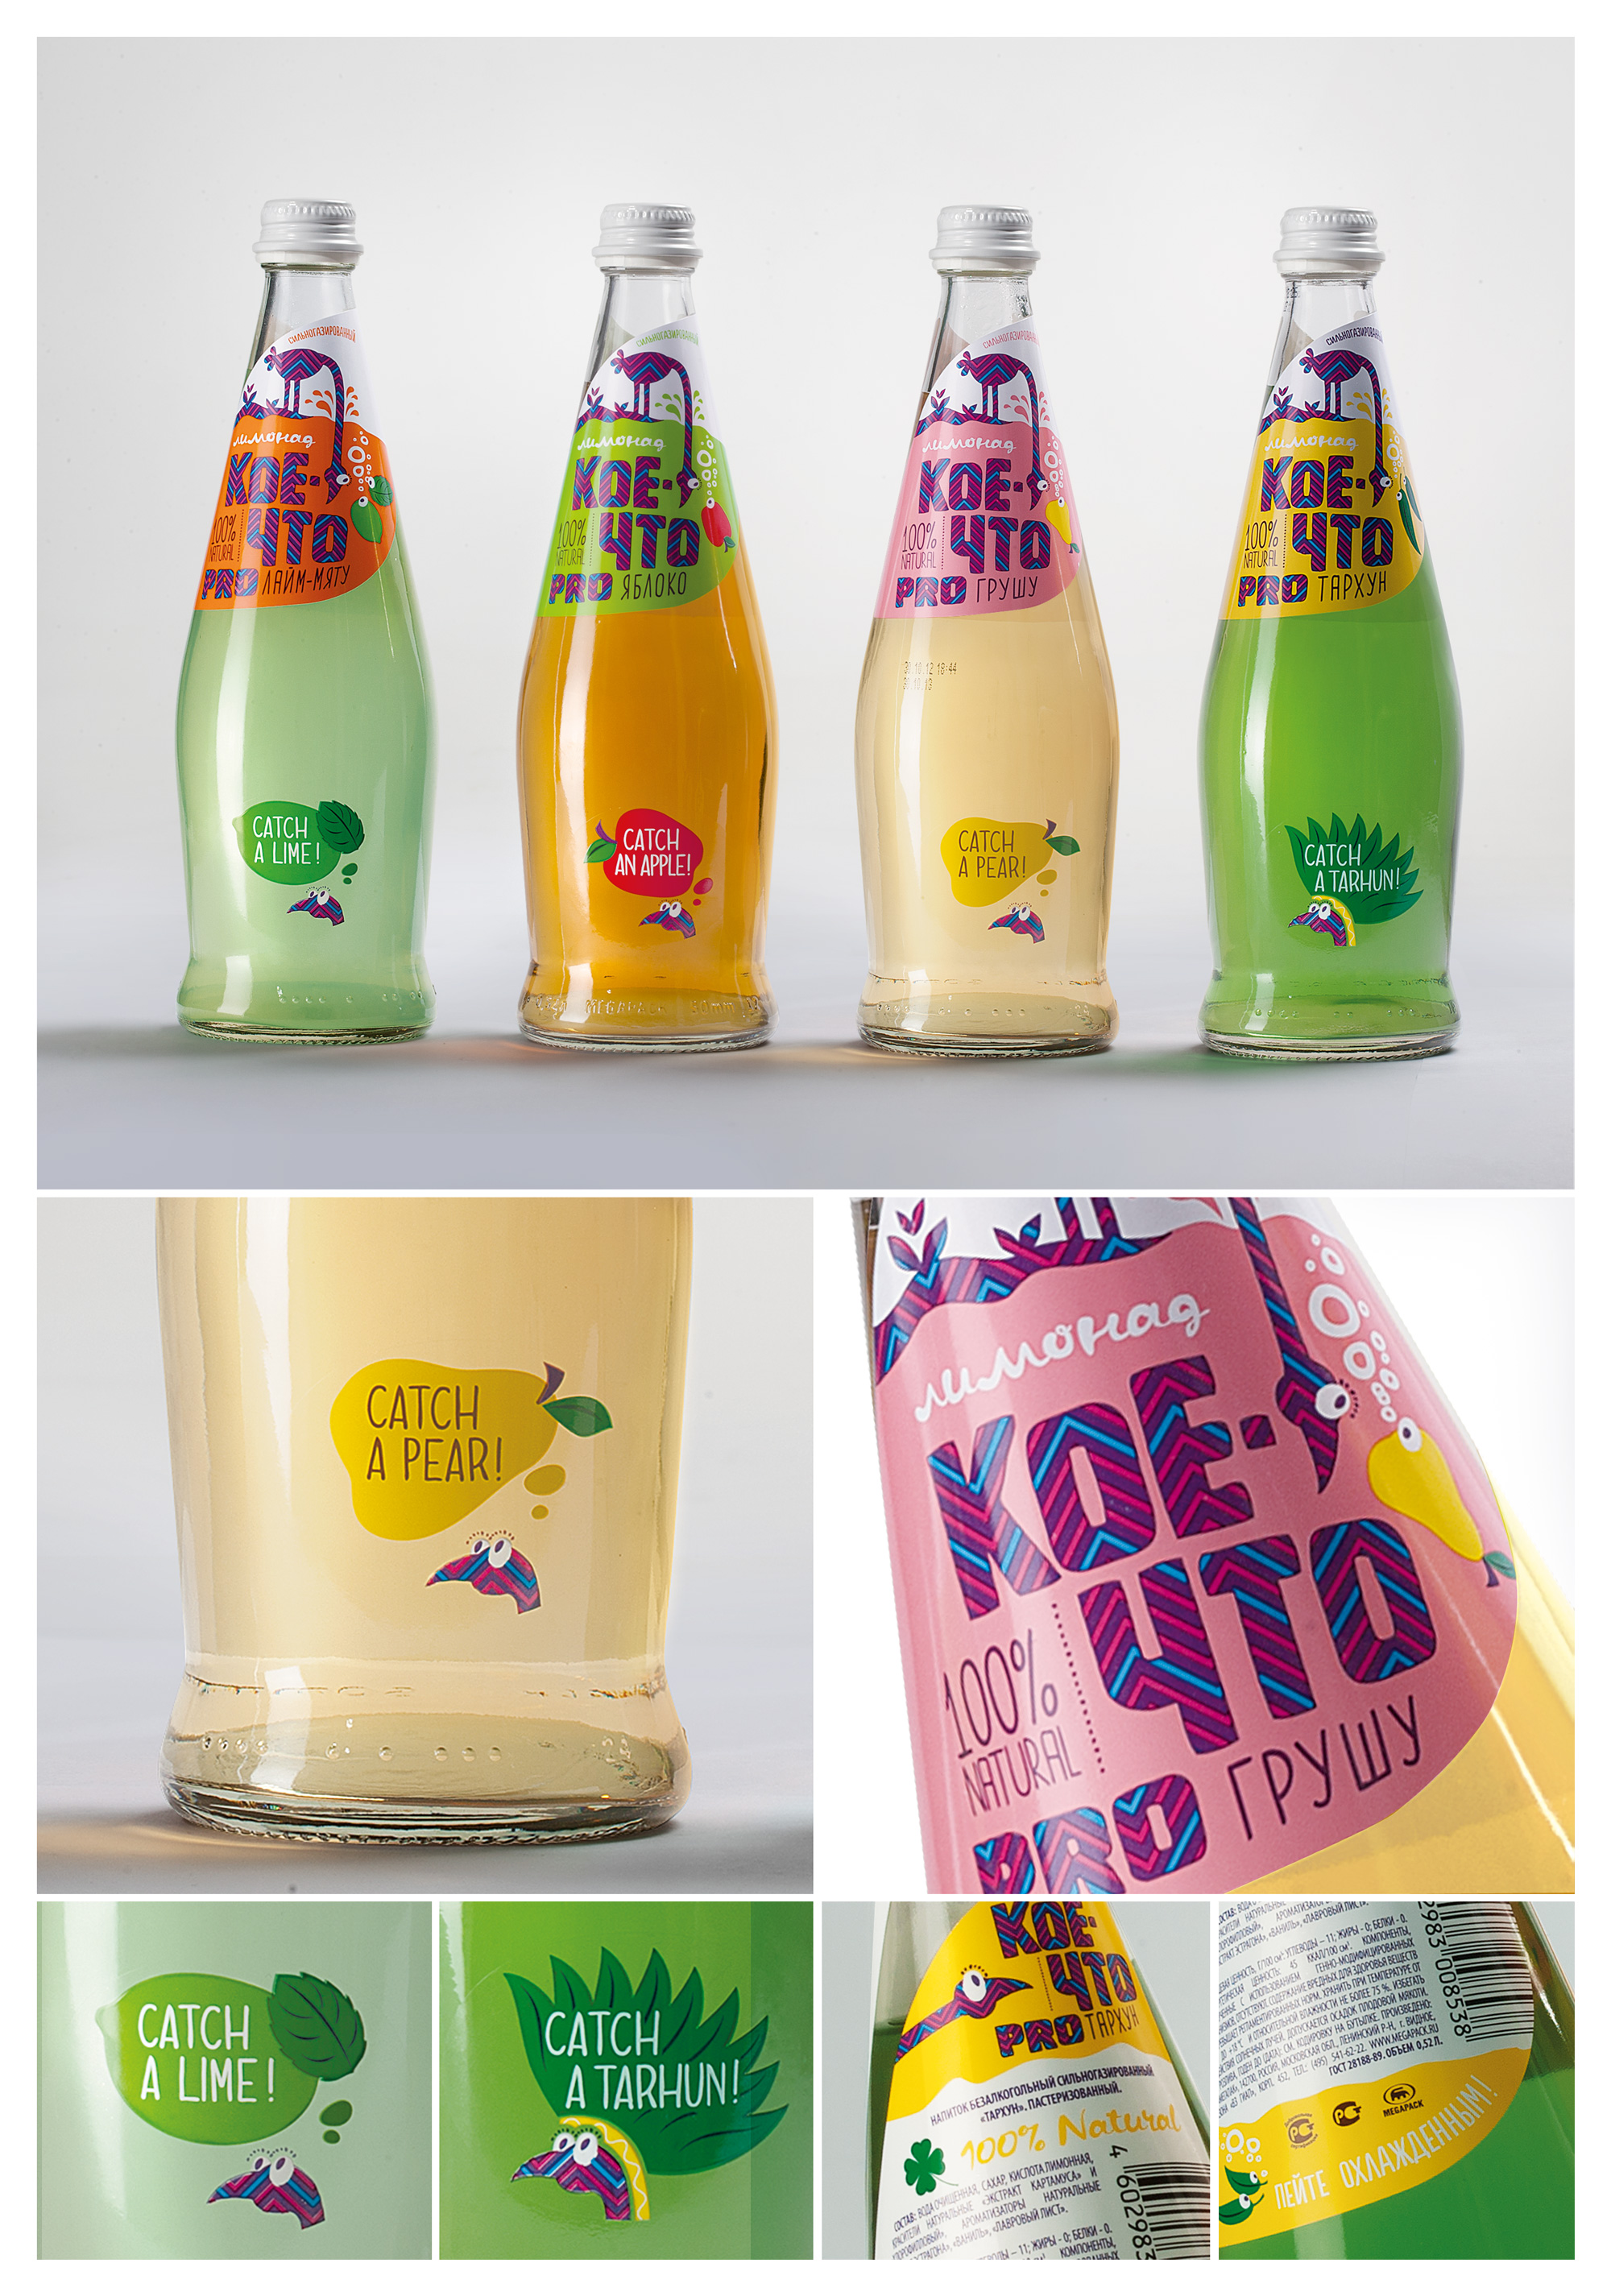 Photo: New brand of non-alcoholic beverages, Koe Chto, designed by Depot WPF